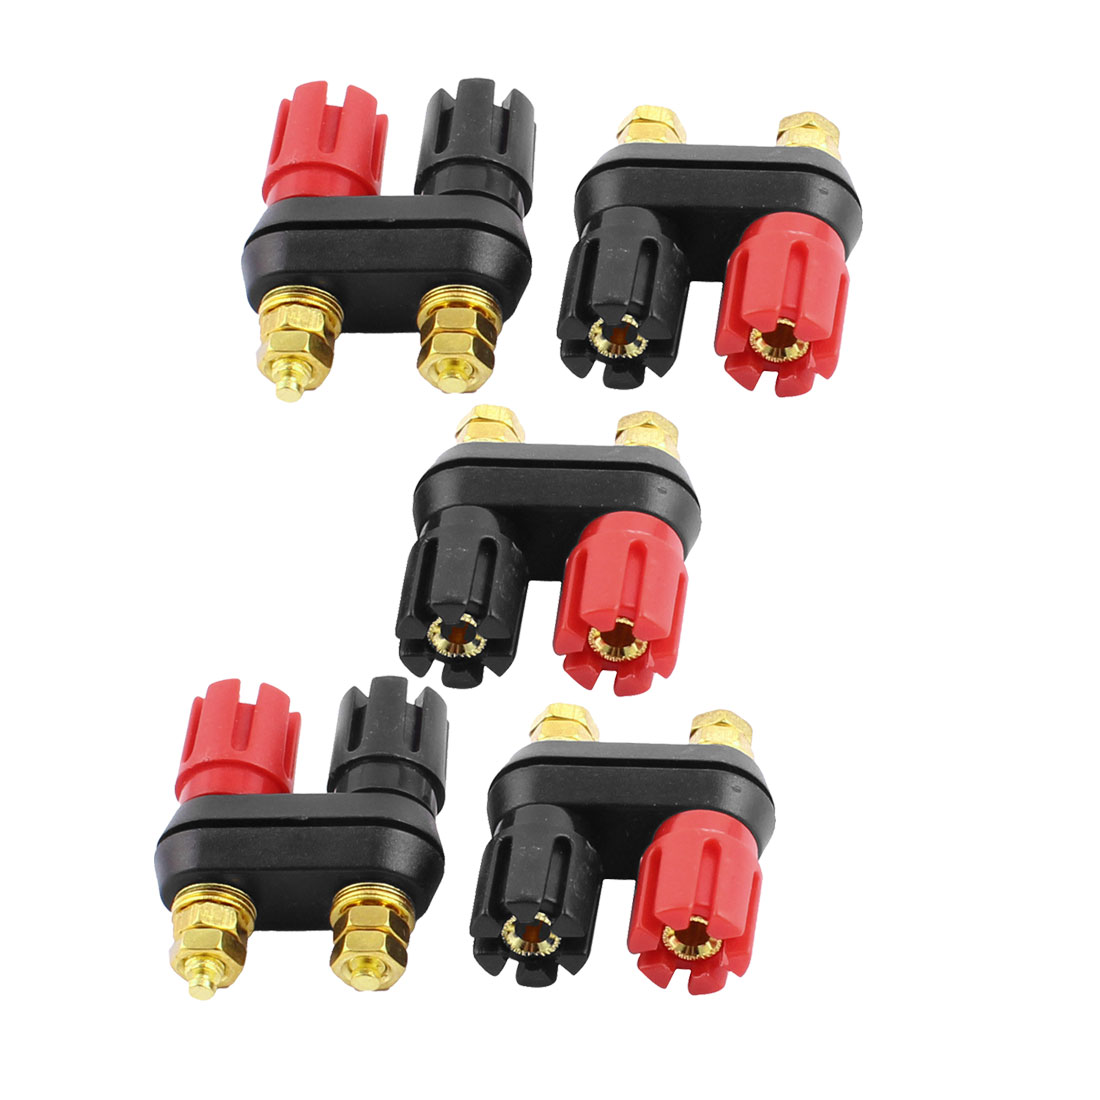 5pcs 5mm Thread Dual Jack Terminal Speaker Amplifier Binding Posts Black Red for 4mm Banana Plug